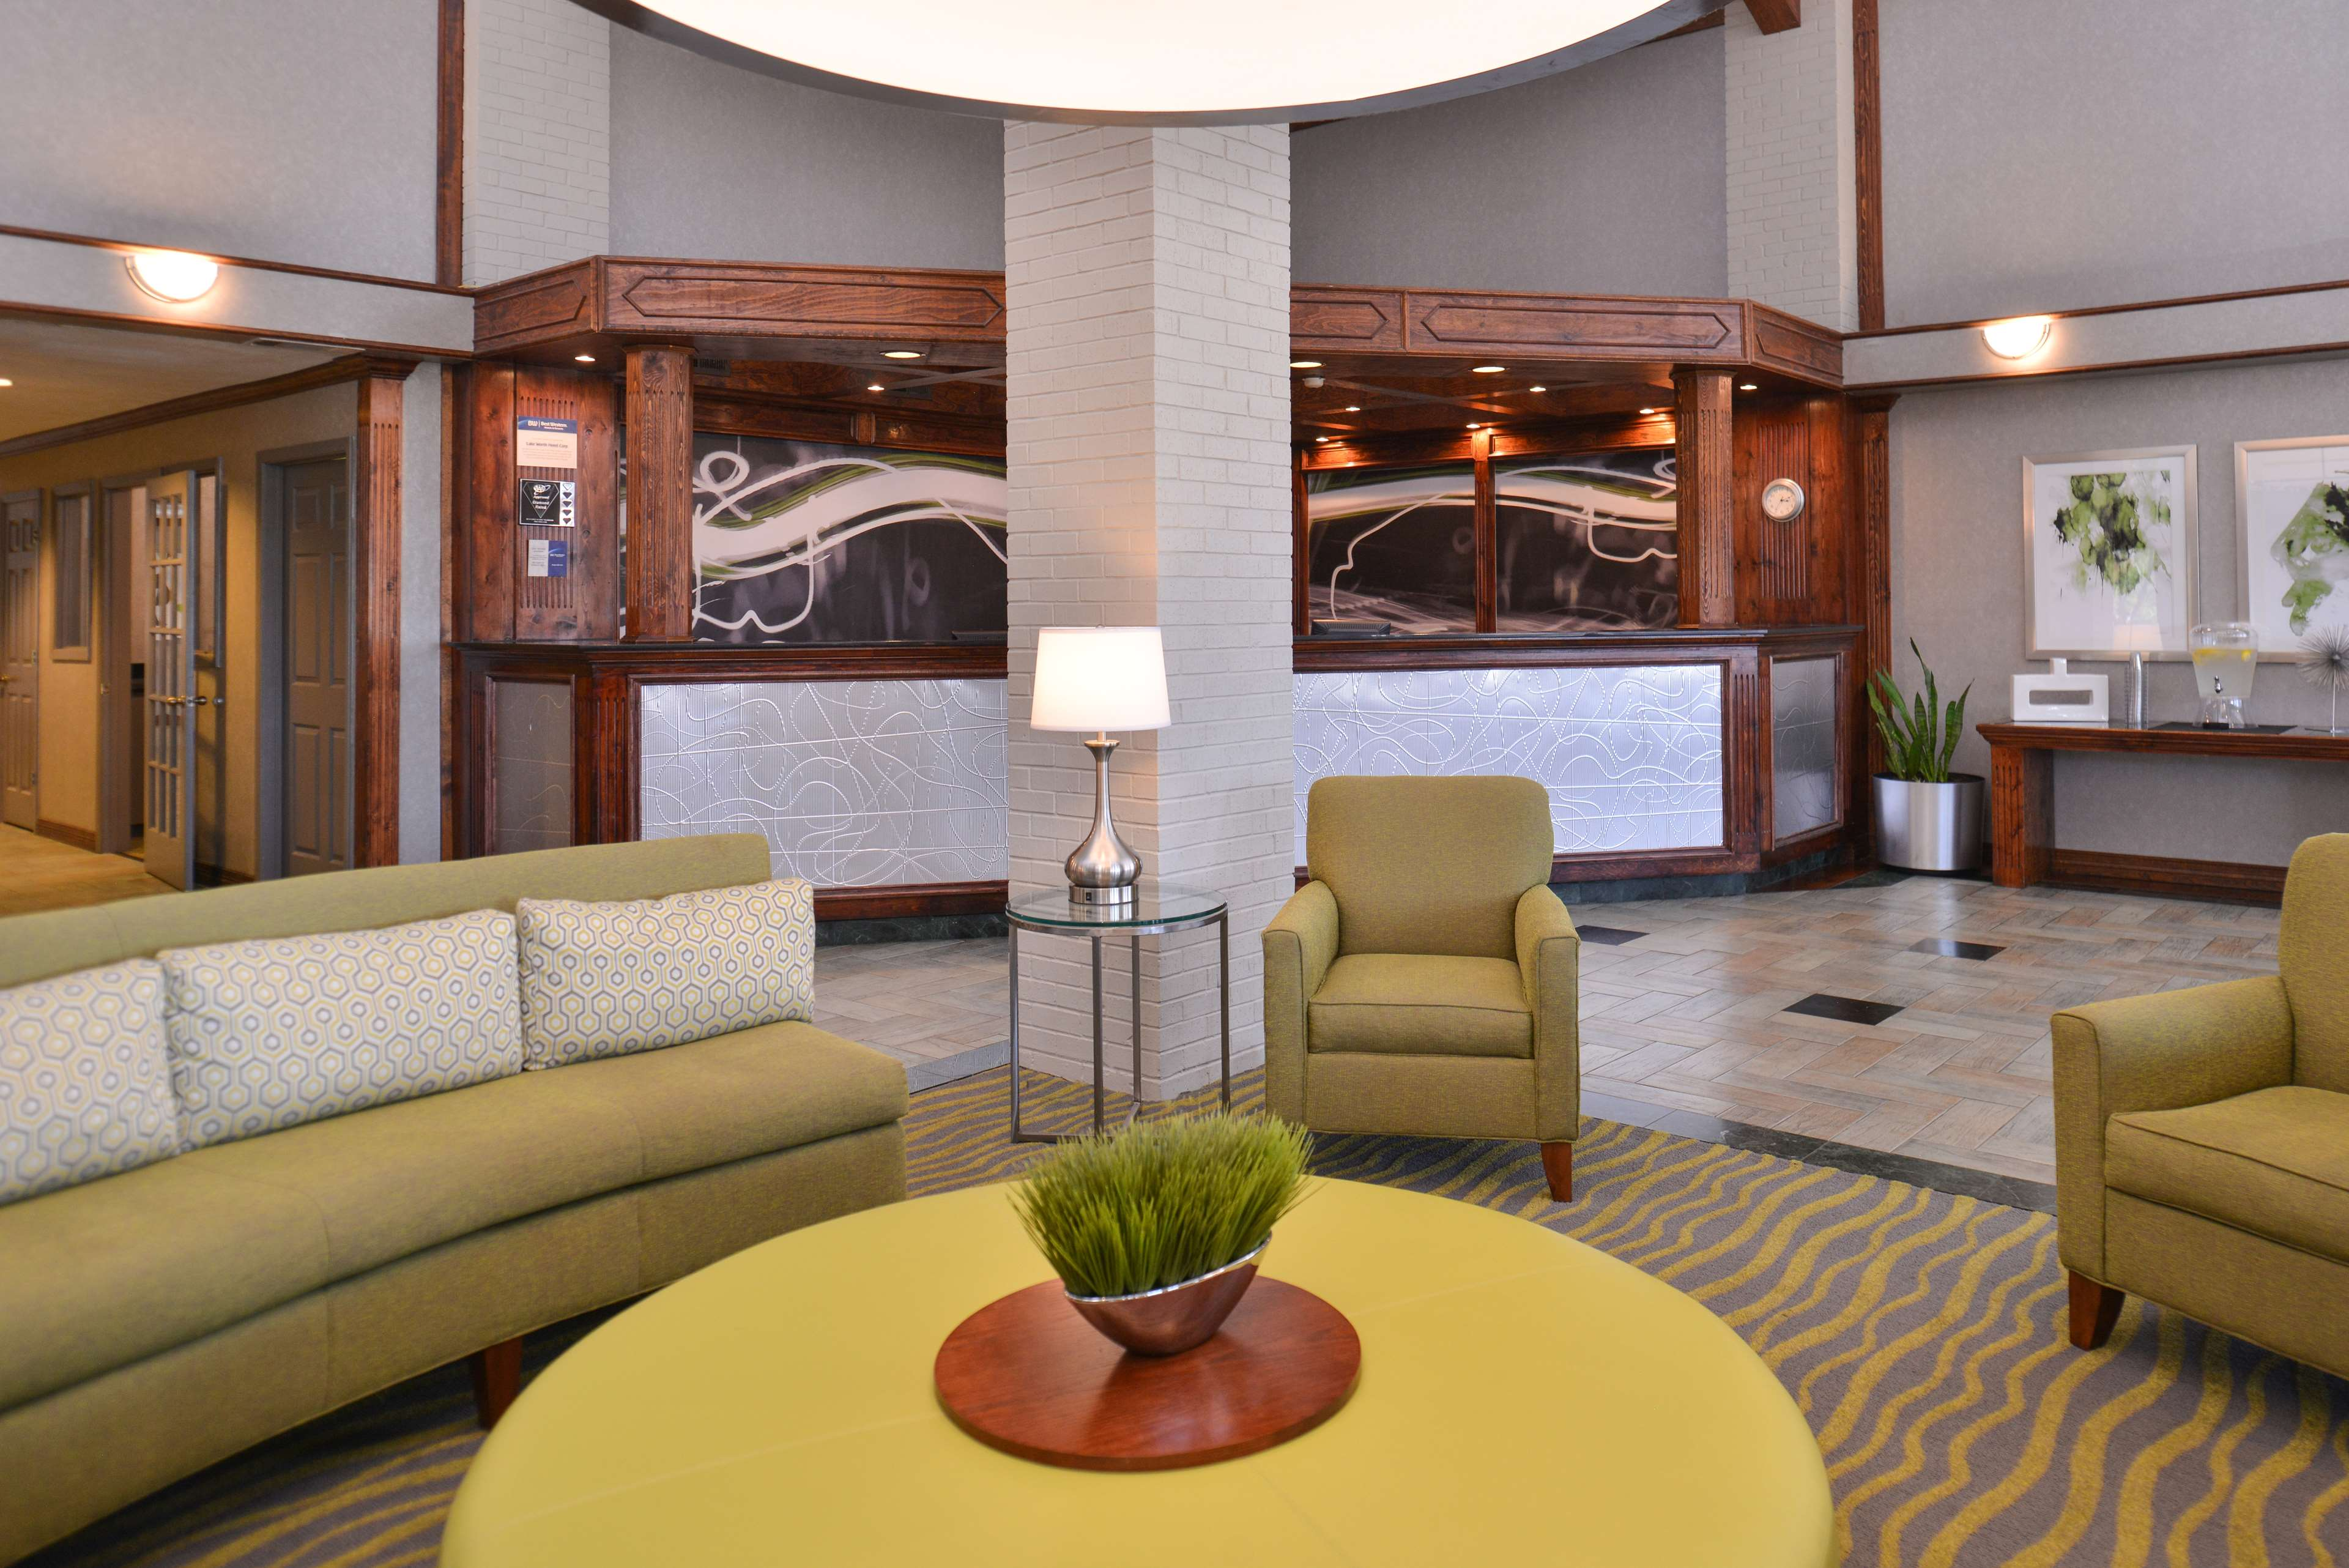 Best Western Irving Inn & Suites at DFW Airport image 5